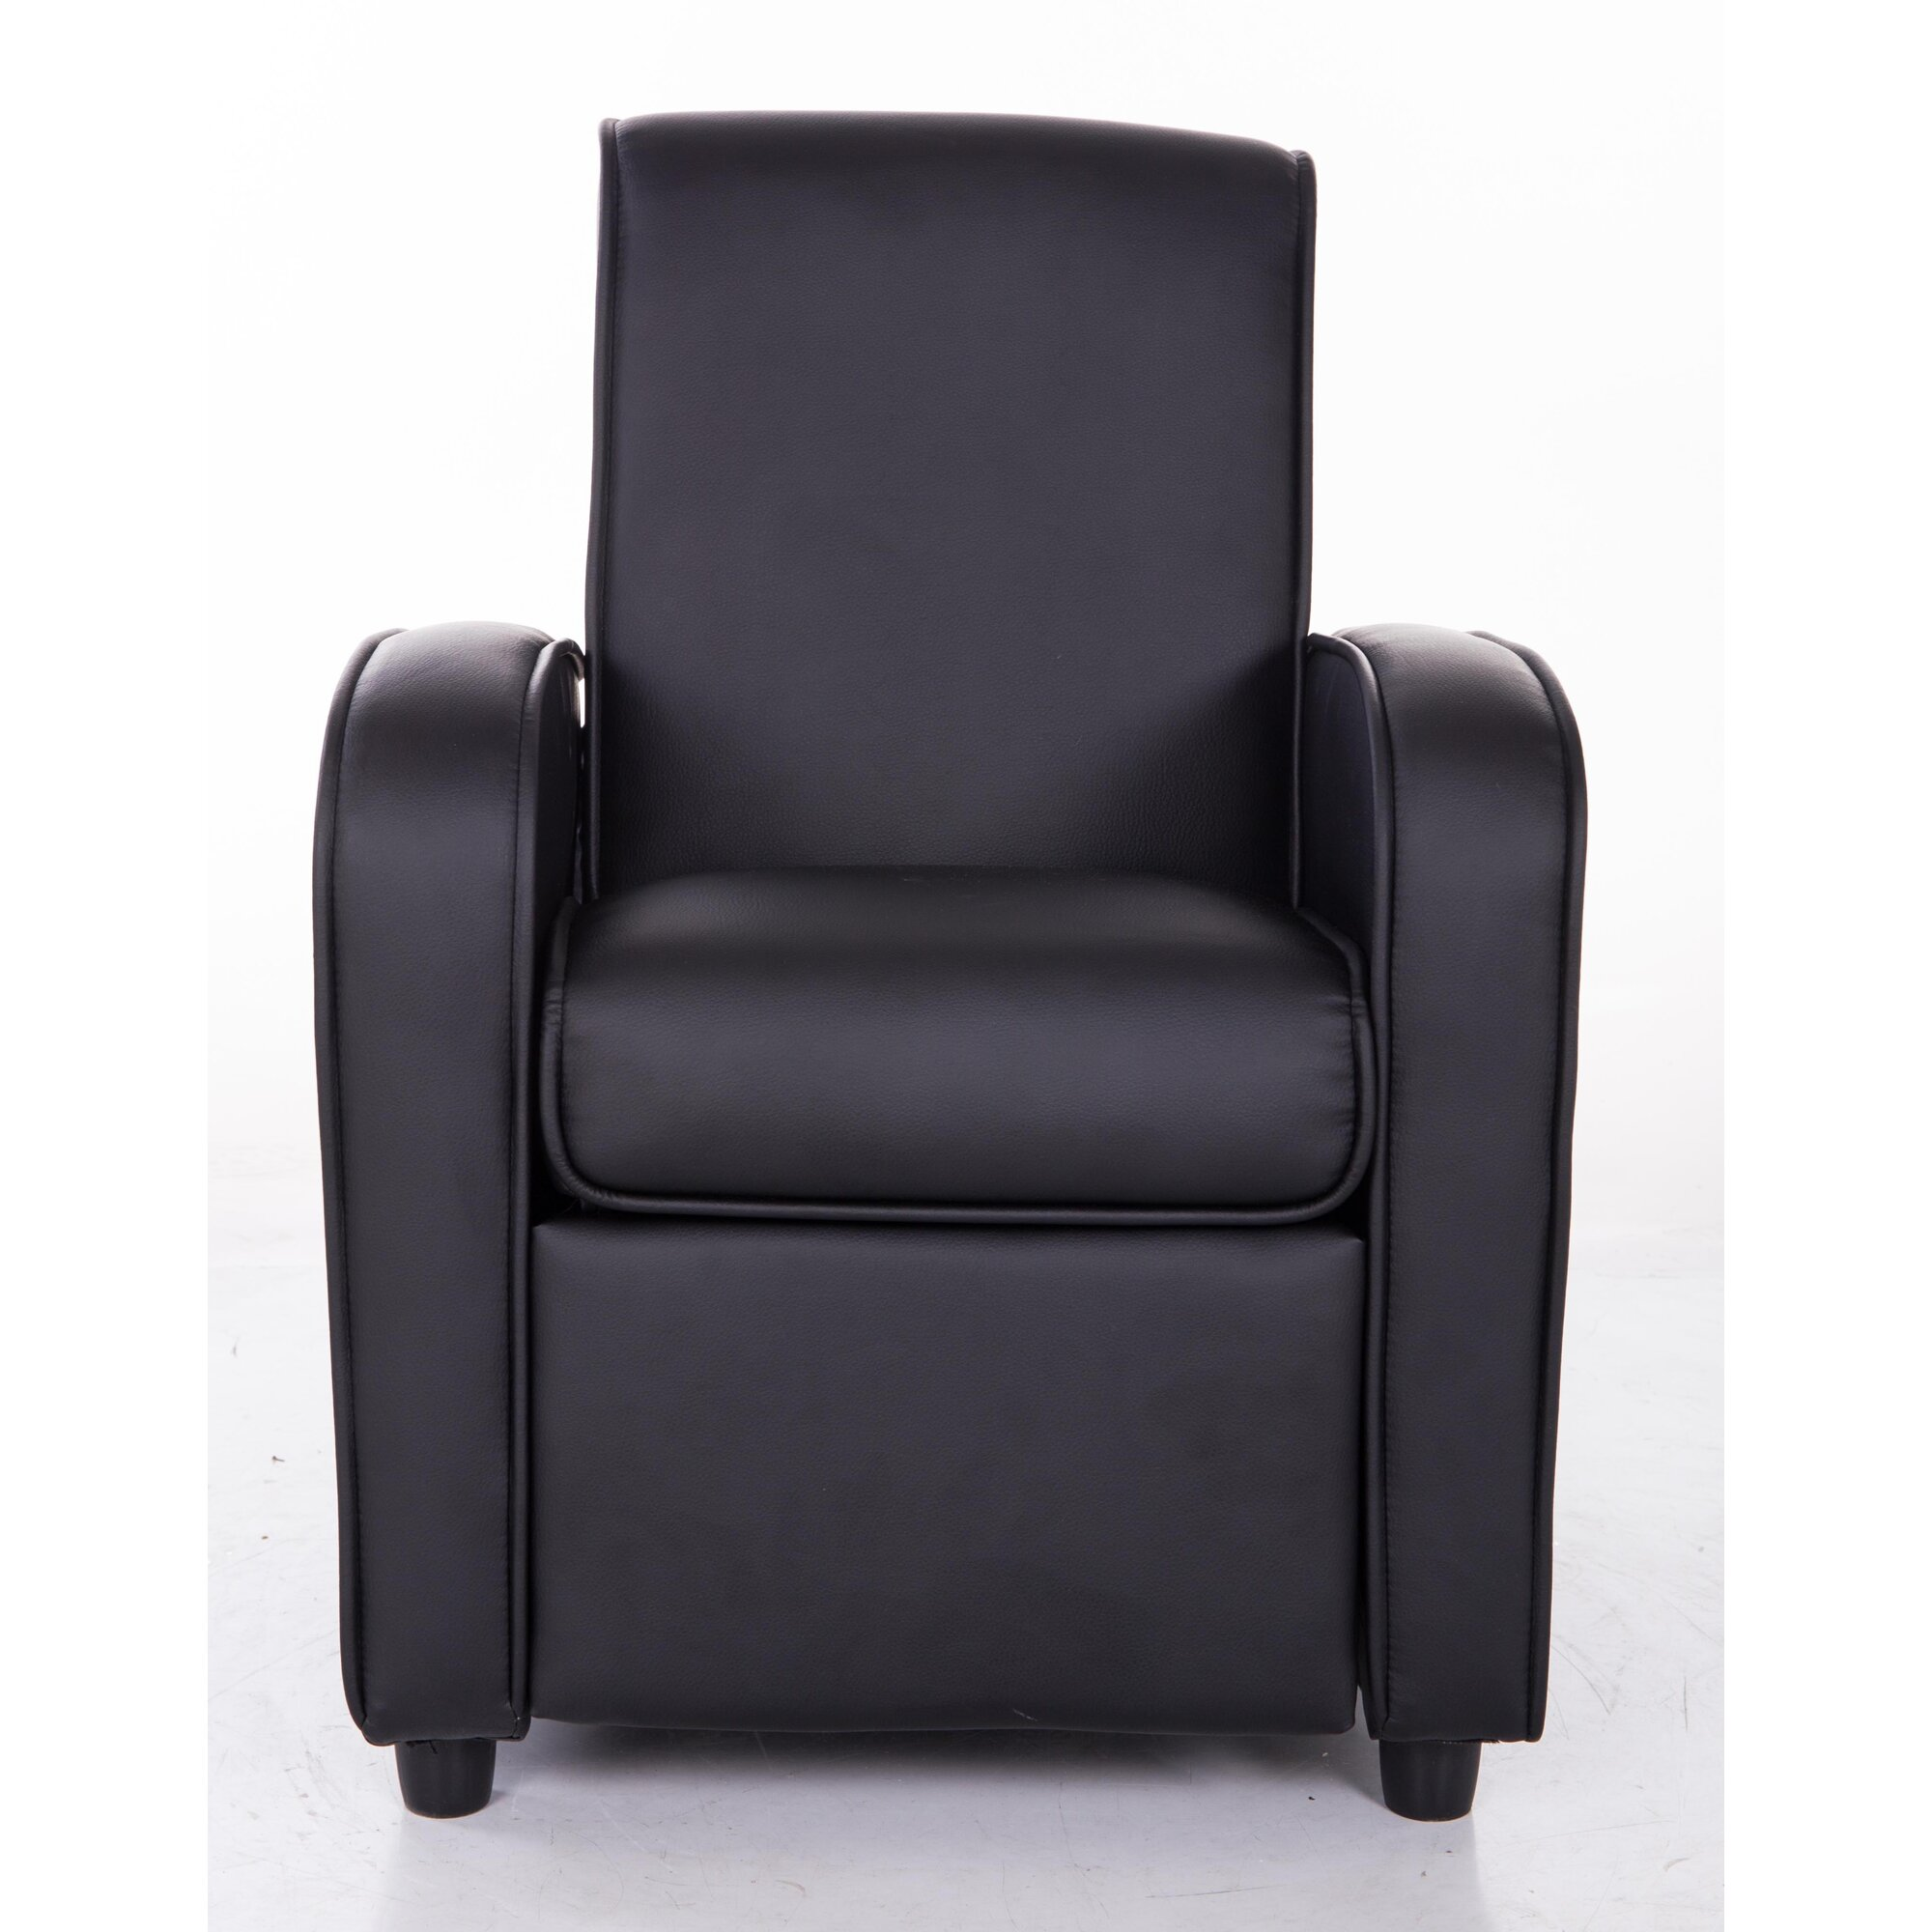 Mochi furniture pu leather comfortable kids recliner wayfair - Modern leather recliner that is totally comfortable ...